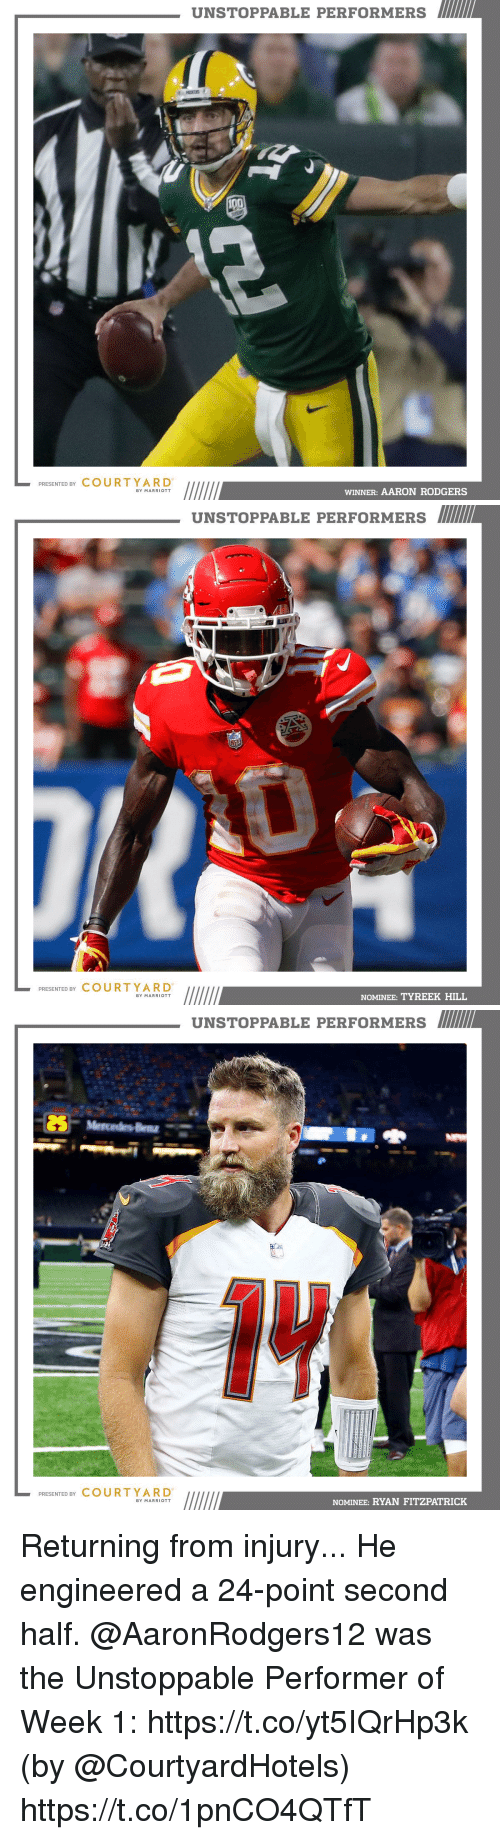 Aaron Rodgers, Memes, and Ryan Fitzpatrick: UNSTOPPABLE PERFORMERS  PRESENTED BY COURTYARD  WINNER: AARON RODGERS  BY MARRIOTT   UNSTOPPABLE PERFORMERS  PRESENTED BY COURT YARD  NOMINEE: TYREEK HILL  BY MARRIOTT   UNSTOPPABLE PERFORMERS  PRESENTED BY COURTYARD  NOMINEE: RYAN FITZPATRICK  BY MARRIOTT Returning from injury... He engineered a 24-point second half.  @AaronRodgers12 was the Unstoppable Performer of Week 1: https://t.co/yt5IQrHp3k (by @CourtyardHotels) https://t.co/1pnCO4QTfT